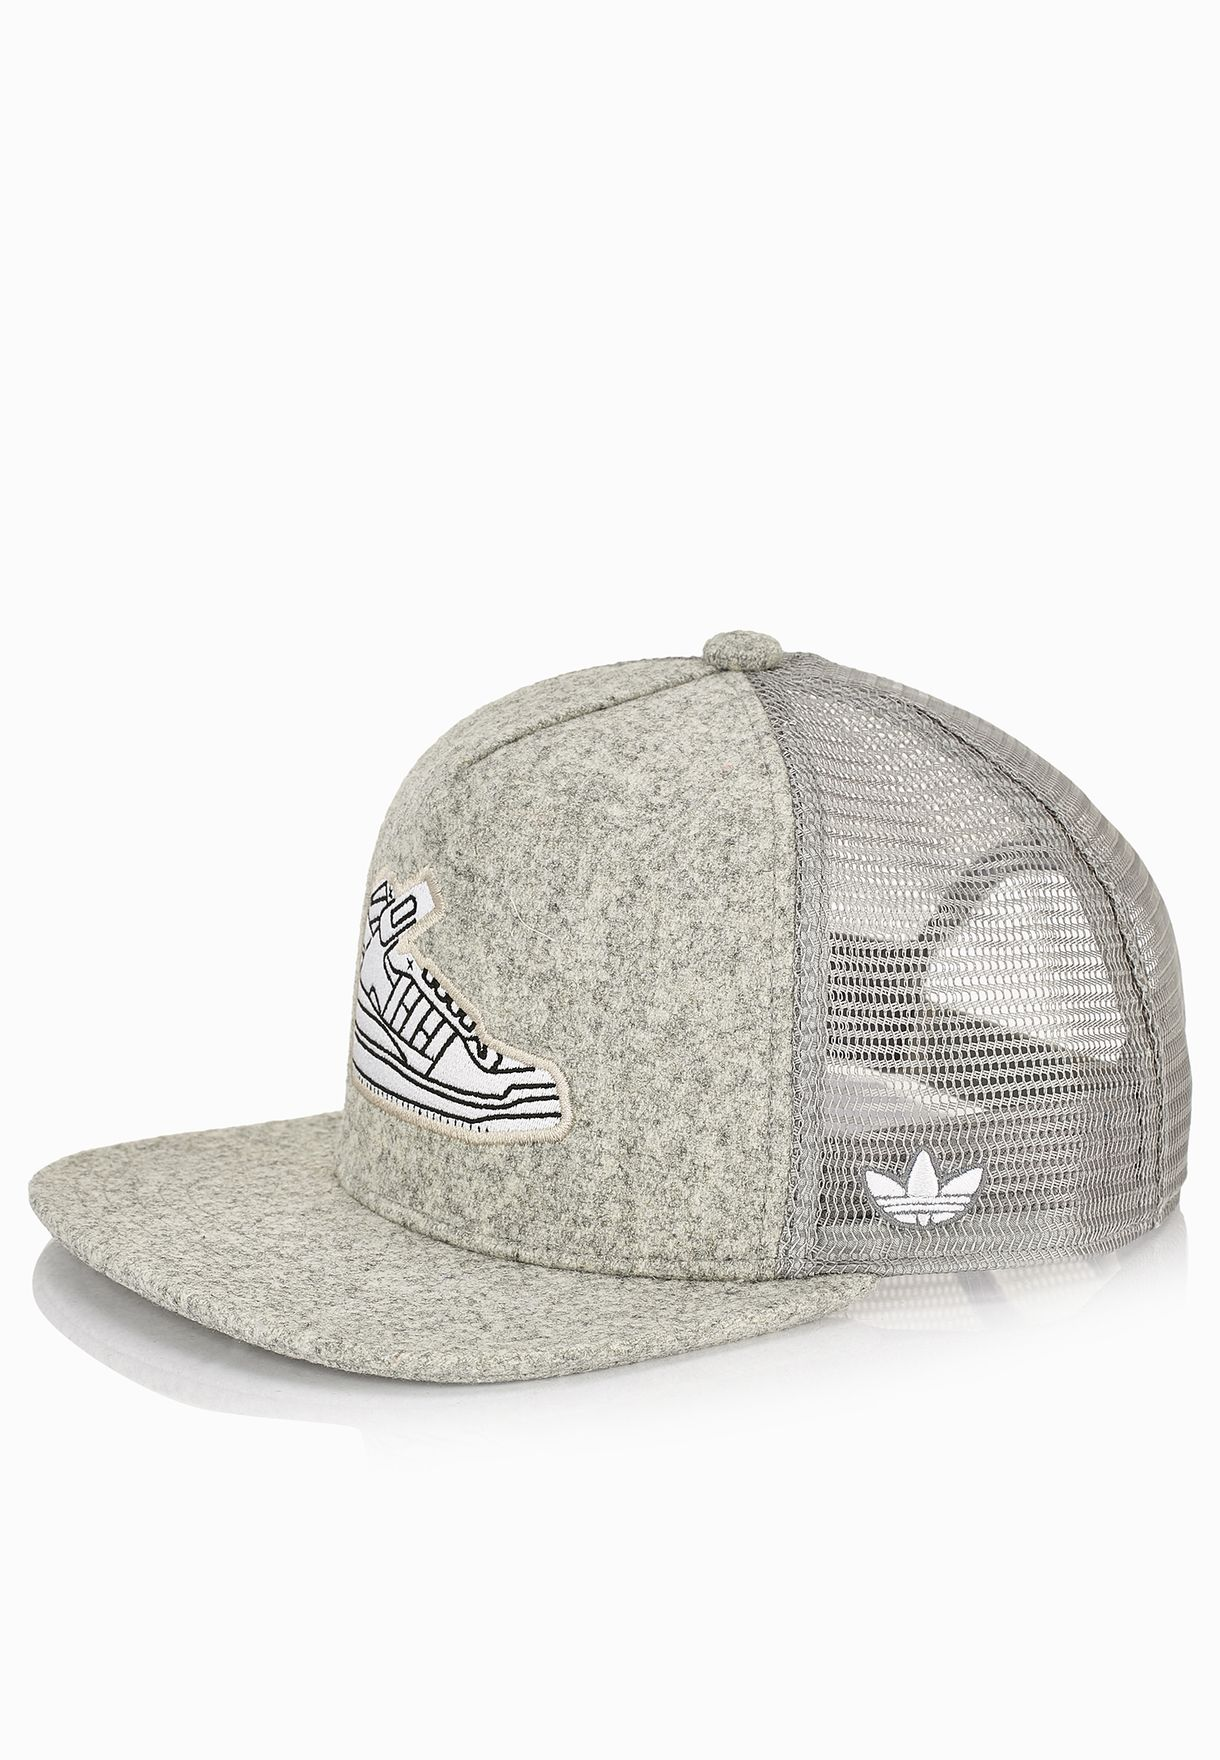 Shop adidas Originals grey Trucker AY9394 for Men in UAE - AD478AC92IFJ 7b828b8a1ae